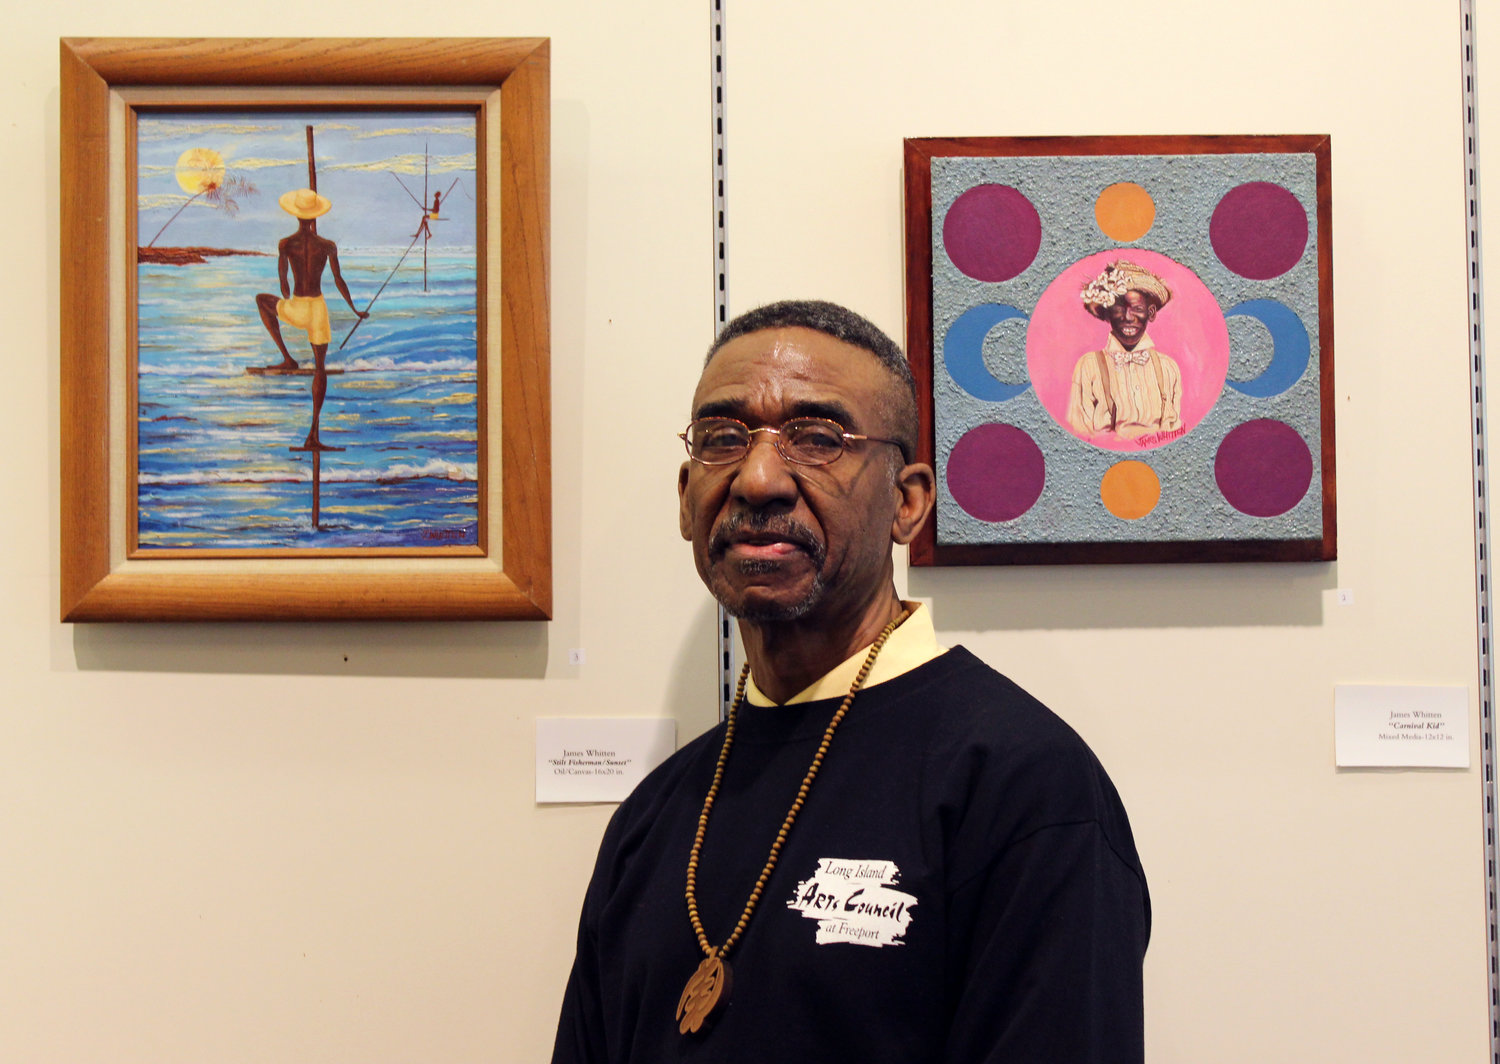 James Whitten is the East Meadow Public Library's resident artist for February, and his work will be on display all month at a pop-up gallery at the Samanea New York Market, the former Source Mall, in Westbury.